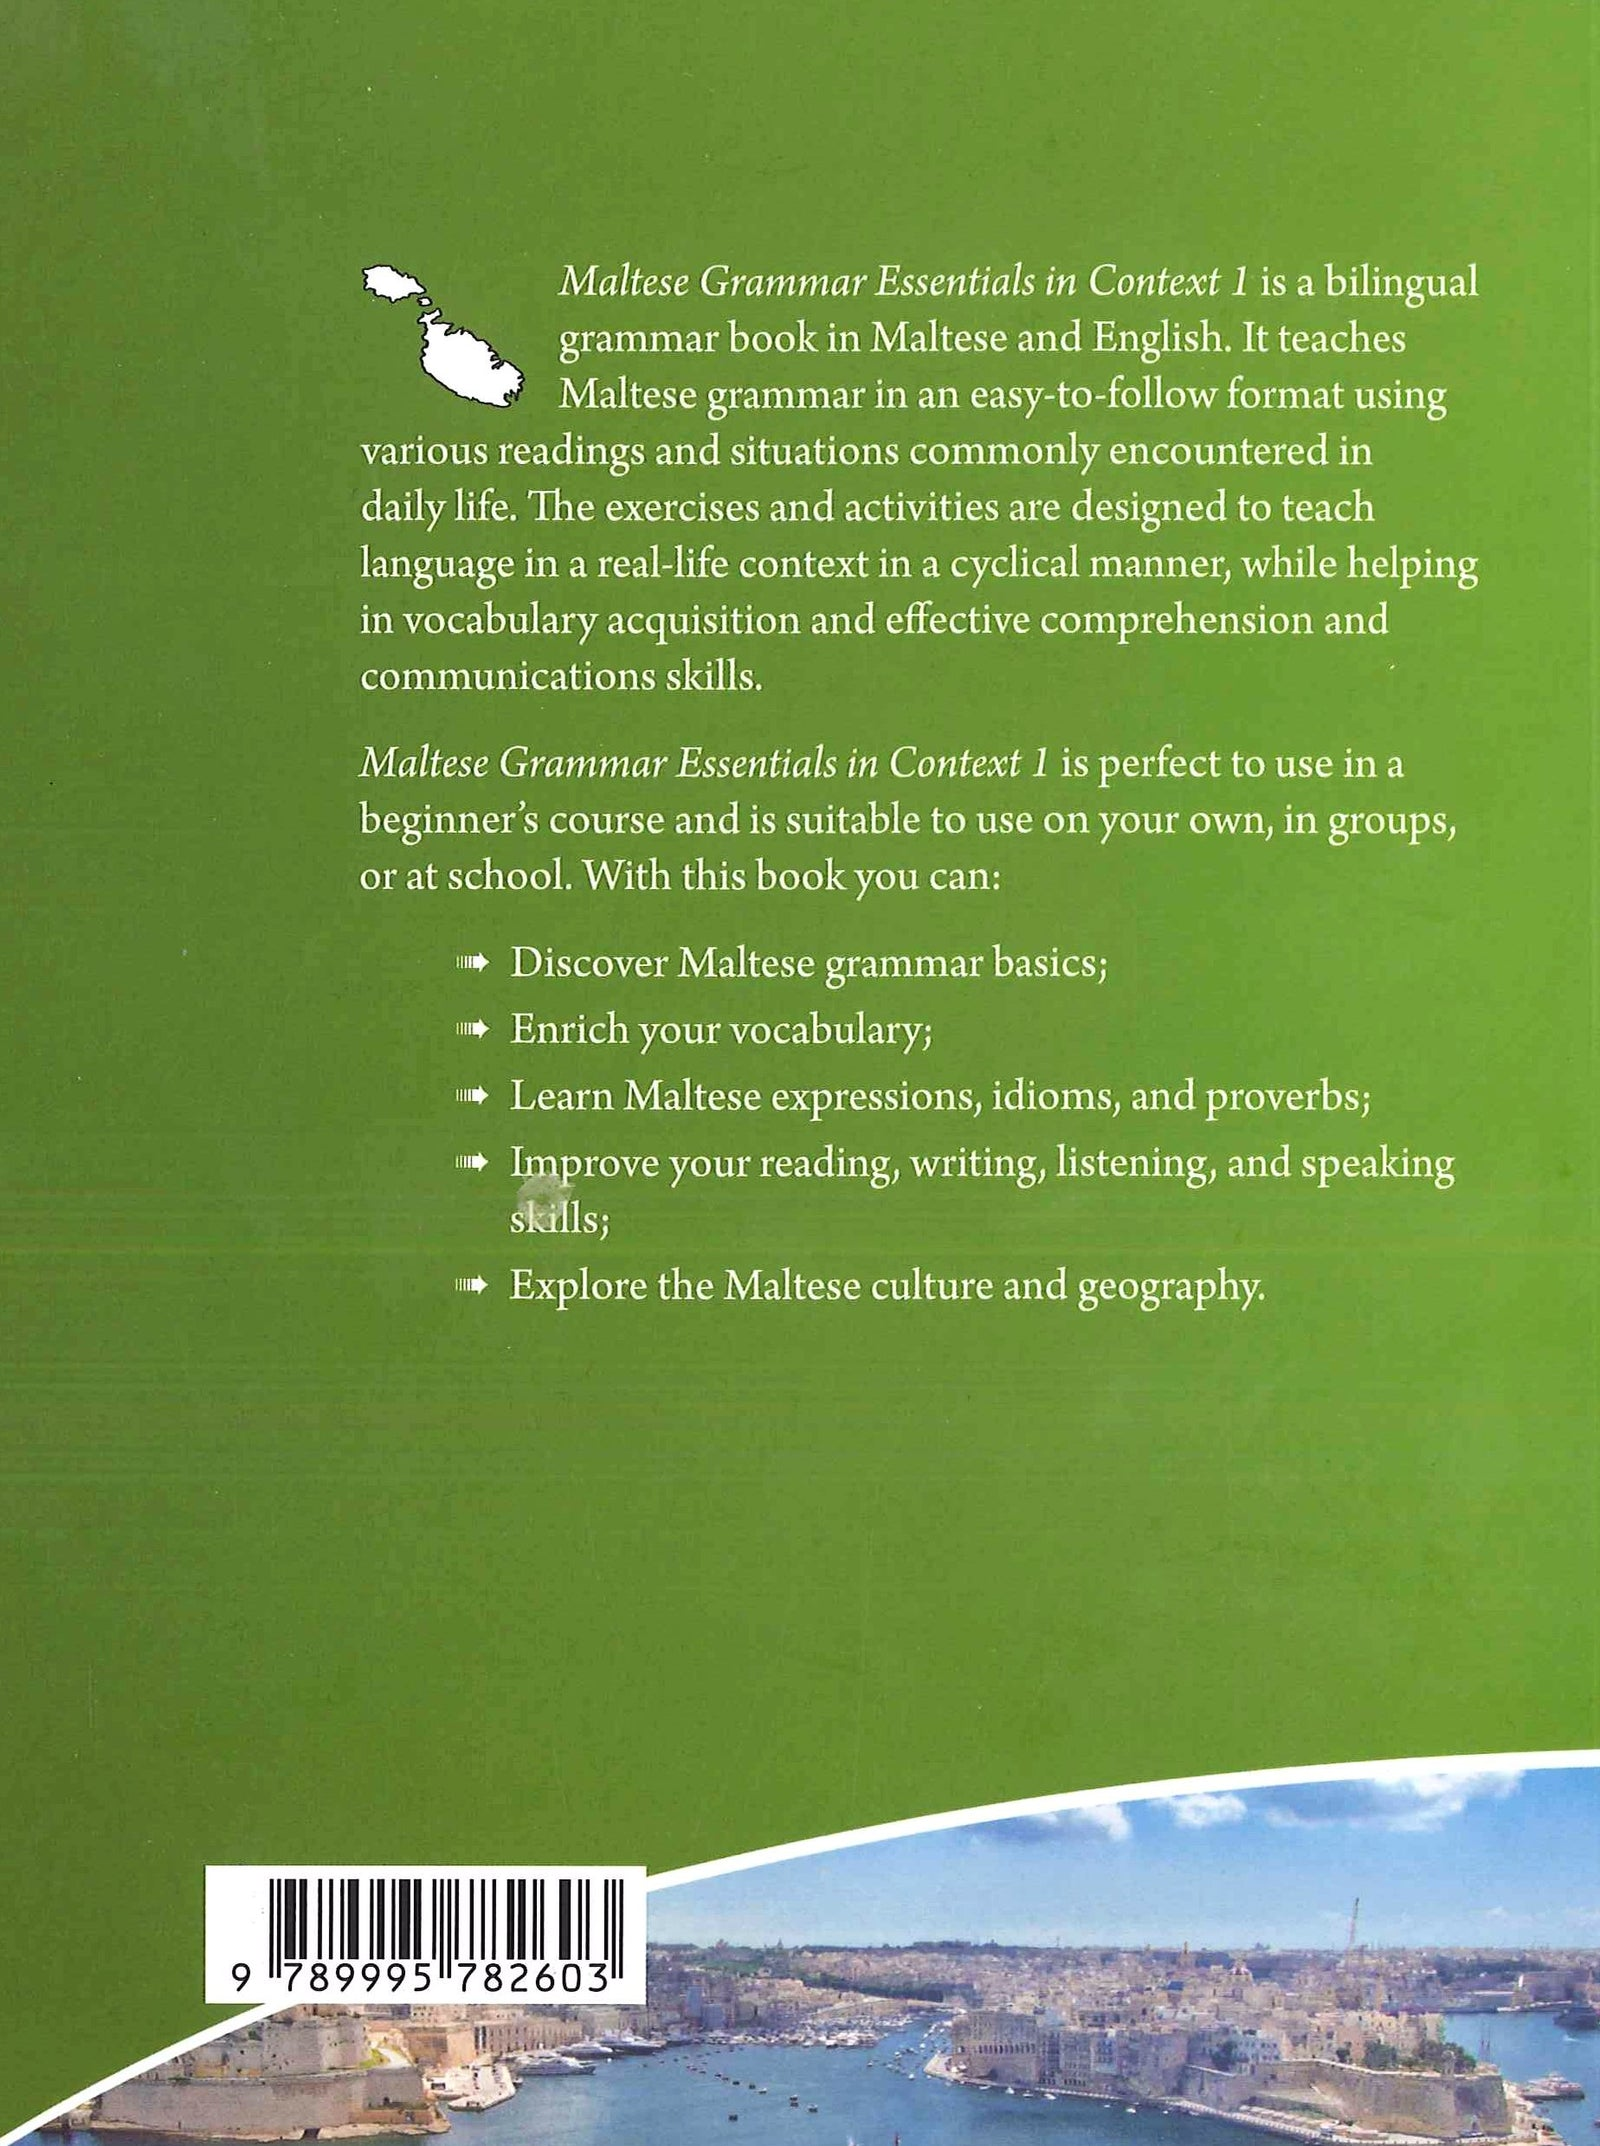 Maltese for Foreigners Course - Learn Maltese Grammar - Essentials 1